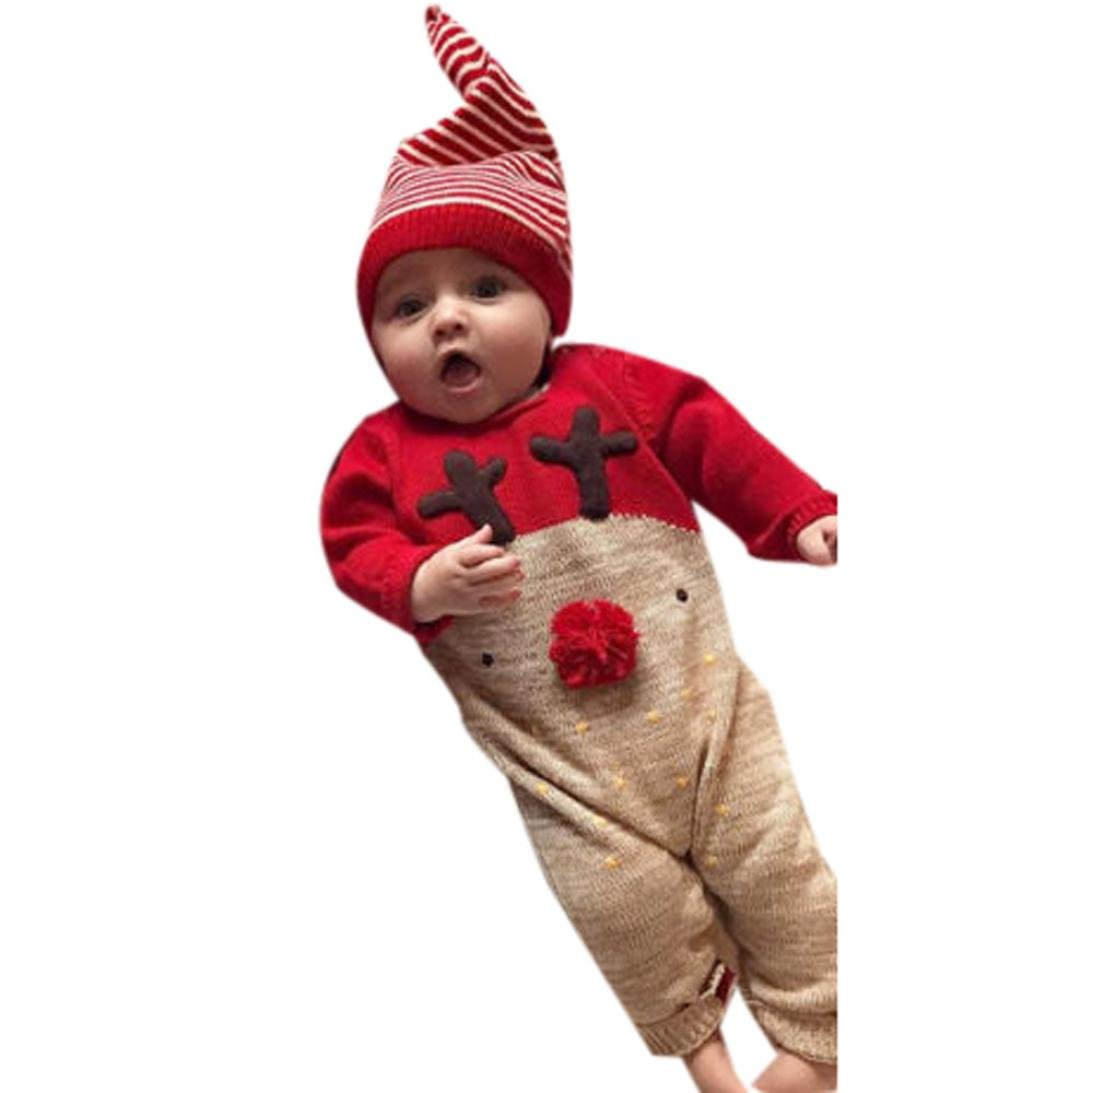 Christmas Jumpsuit Baby.Cheap Christmas Jumpsuit Find Christmas Jumpsuit Deals On